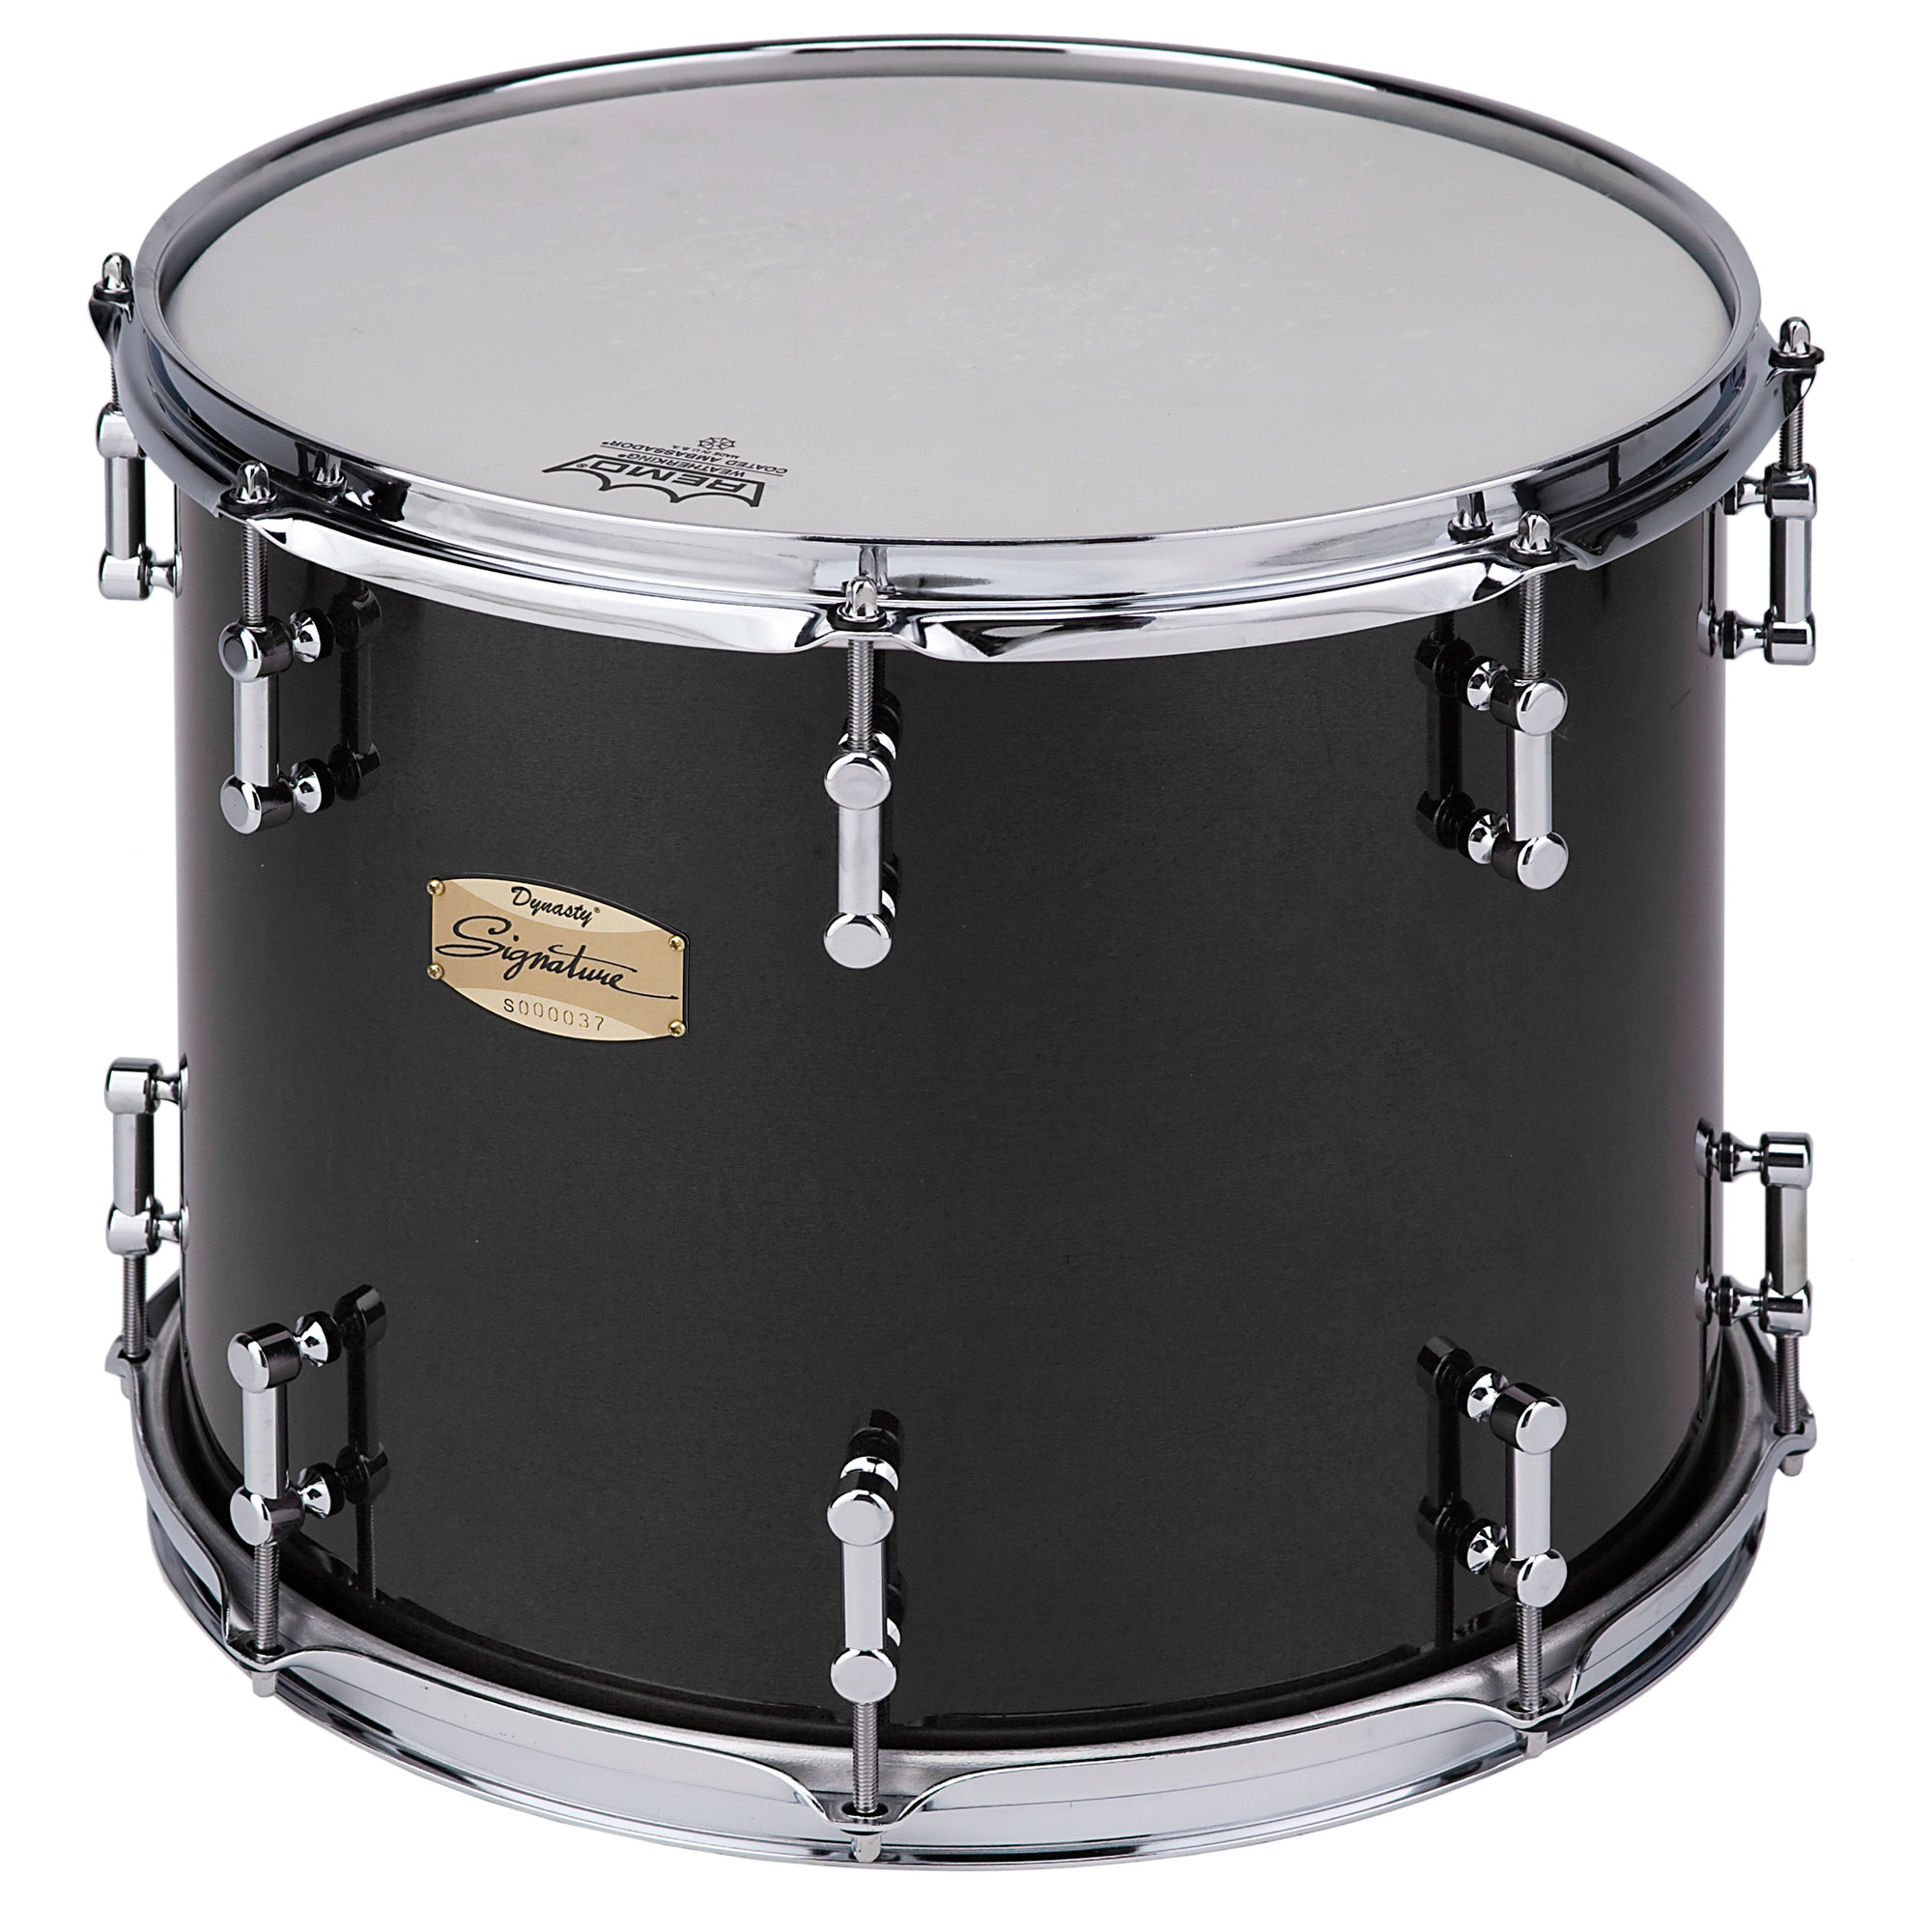 "Dynasty 16"" (Diameter) x 14"" (Deep) Signature Professional Double Headed Concert Tom"